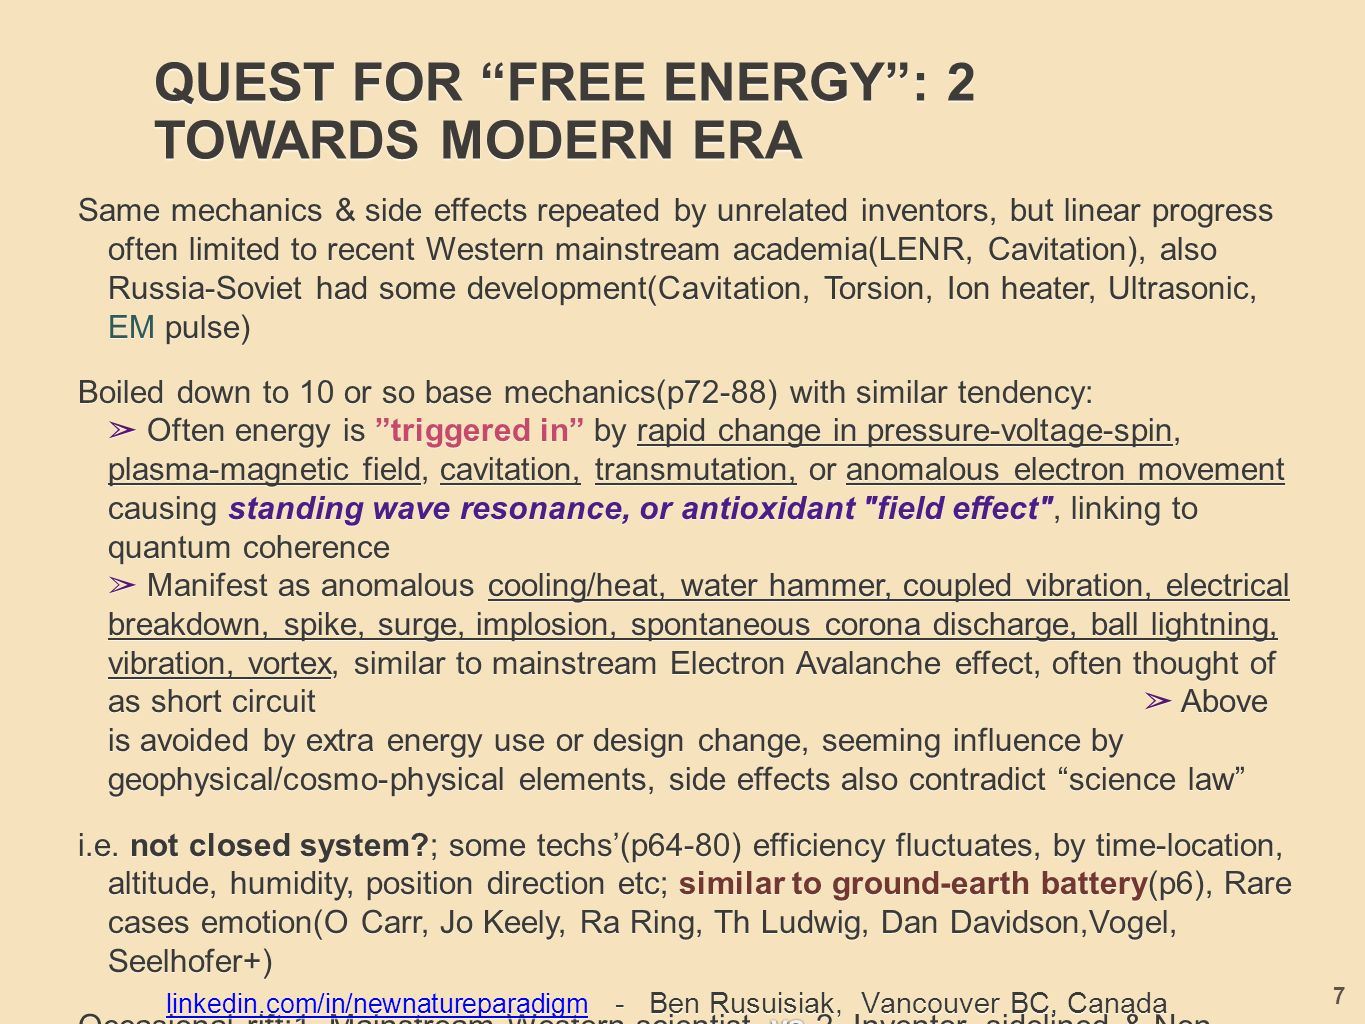 QUEST FOR FREE ENERGY : 2 TOWARDS MODERN ERA Same mechanics & side effects repeated by unrelated inventors, but linear progress often limited to recent Western mainstream academia(LENR, Cavitation), also Russia-Soviet had some development(Cavitation, Torsion, Ion heater, Ultrasonic, EM pulse) Boiled down to 10 or so base mechanics(p72-88) with similar tendency: ➢ Often energy is triggered in by rapid change in pressure-voltage-spin, plasma-magnetic field, cavitation, transmutation, or anomalous electron movement causing standing wave resonance, or antioxidant field effect , linking to quantum coherence ➢ Manifest as anomalous cooling/heat, water hammer, coupled vibration, electrical breakdown, spike, surge, implosion, spontaneous corona discharge, ball lightning, vibration, vortex, similar to mainstream Electron Avalanche effect, often thought of as short circuit ➢ Above is avoided by extra energy use or design change, seeming influence by geophysical/cosmo-physical elements, side effects also contradict science law i.e.